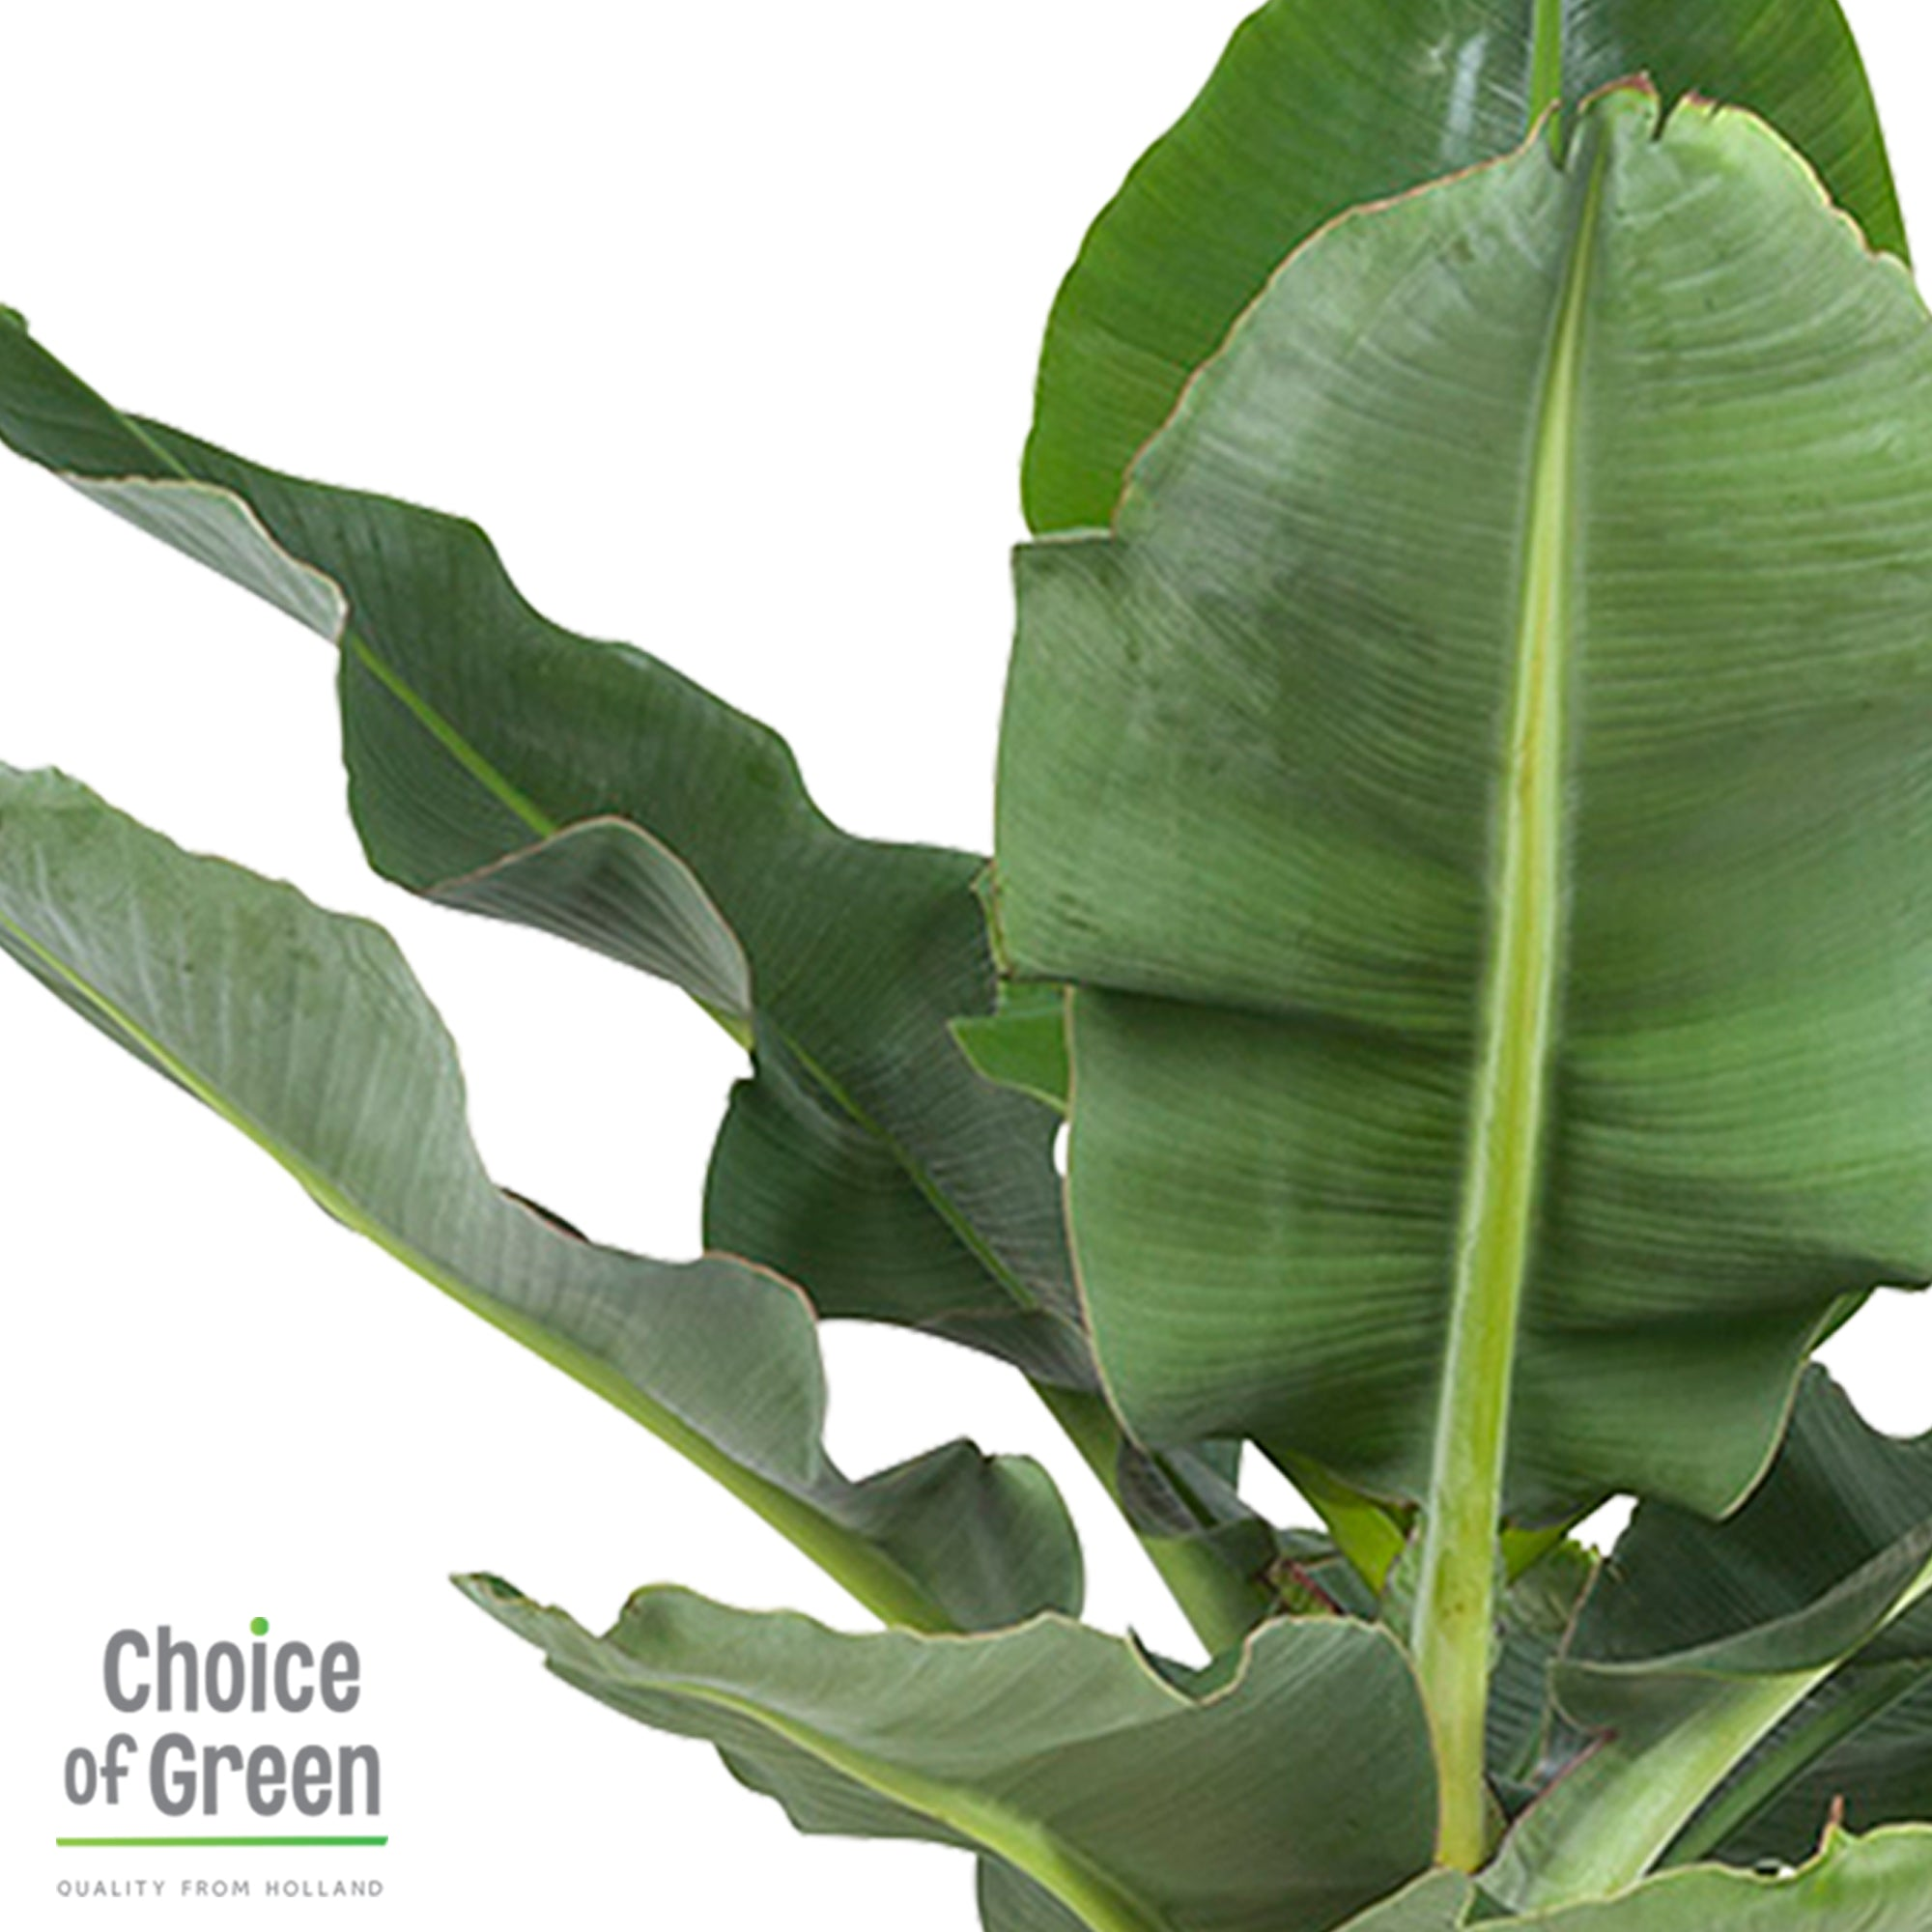 Choice of Green - Musa - Bananenplant - in Elho® Greenville pot zwart - Hoogte 80 cm - Diameter pot 30 cm